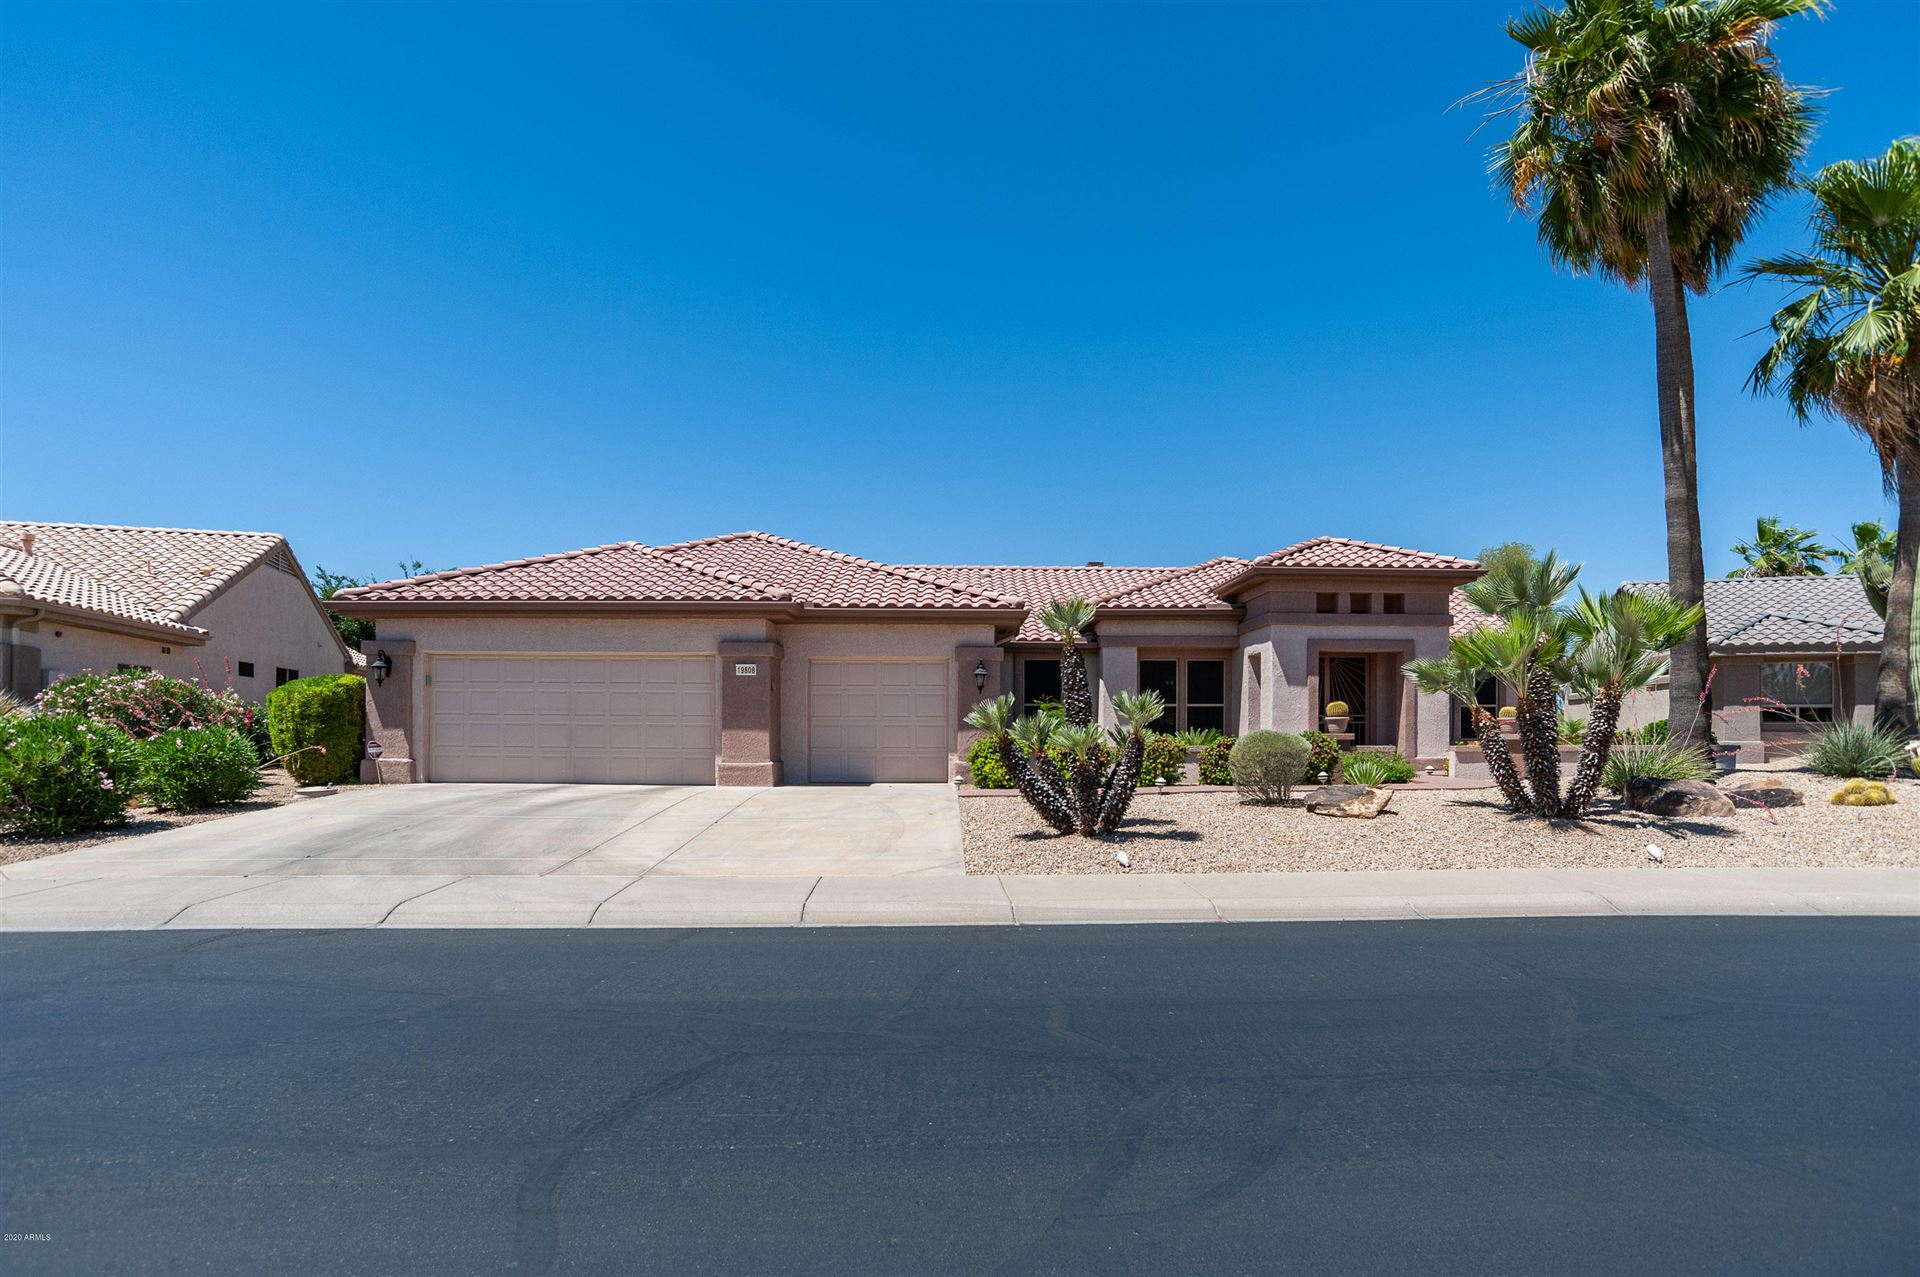 19808 N SHADOW MOUNTAIN Drive, Surprise, AZ 85374 - MLS#: 6080608